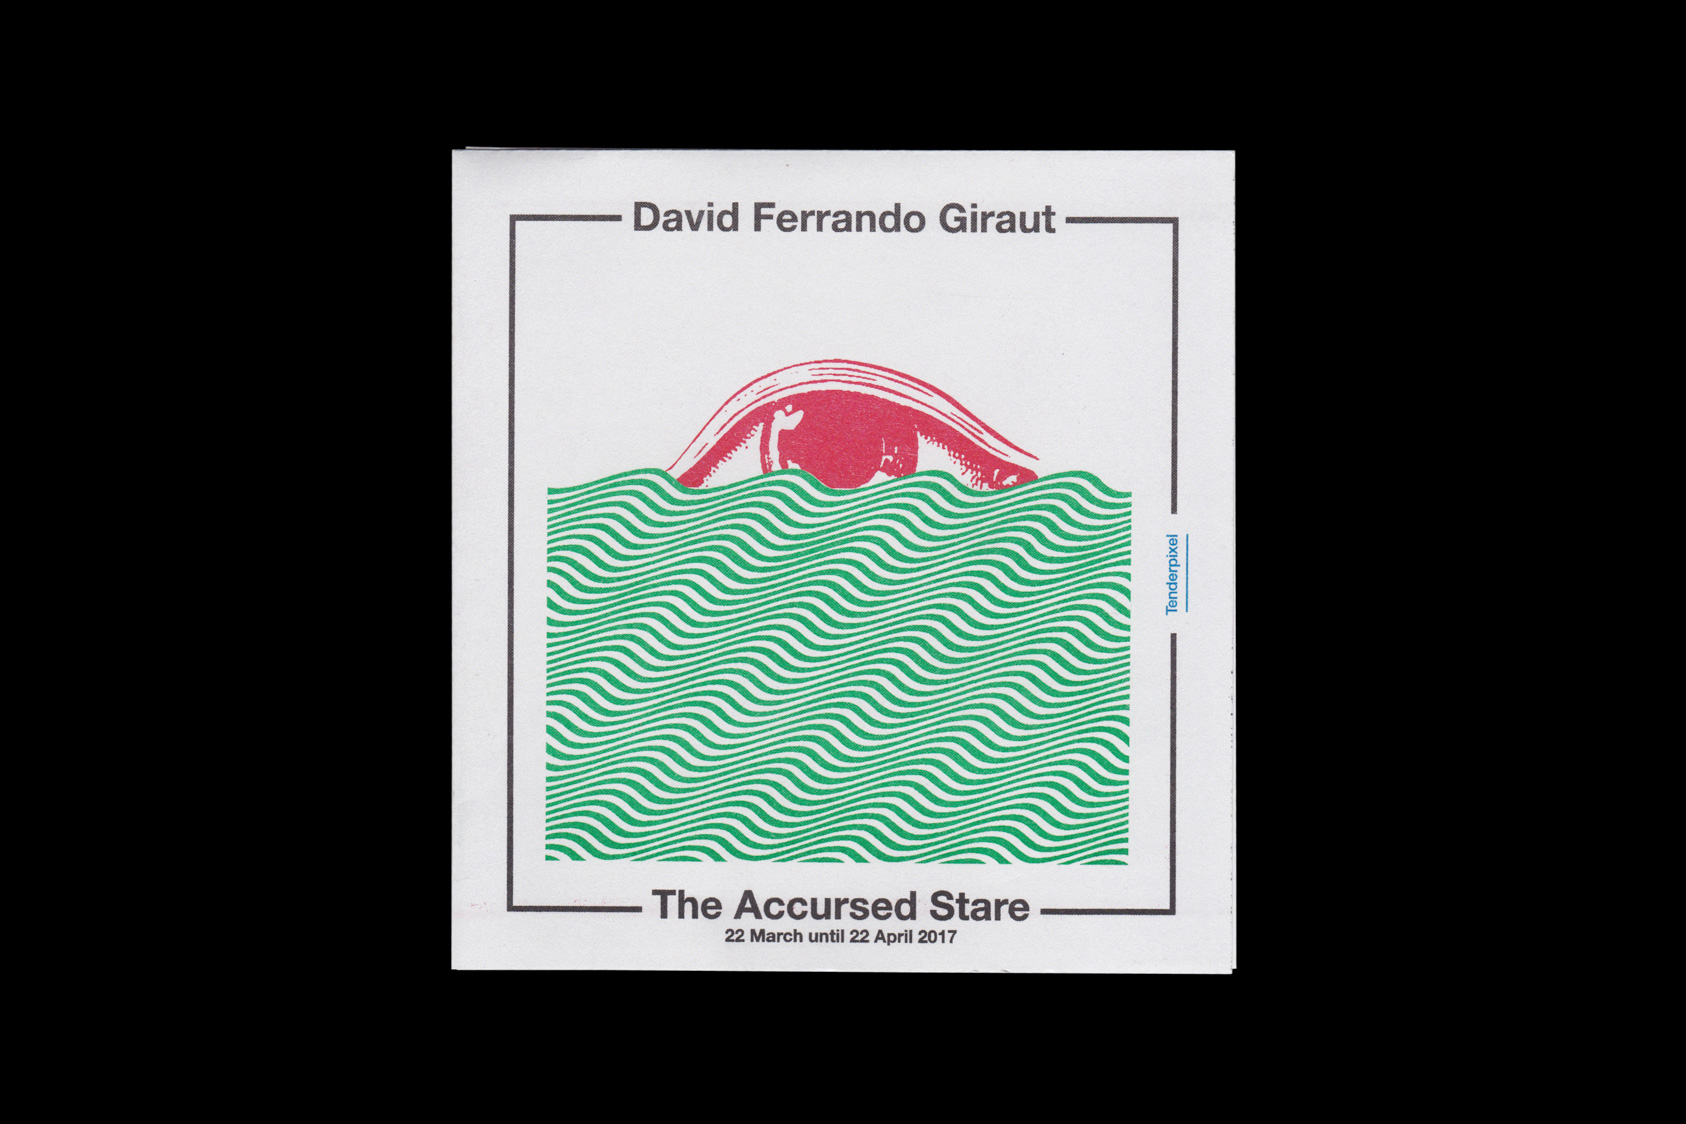 The Accursed Stare - a publication for David Ferrando Giraut and Tenderpixel and gallery, 2017 by the agency for emerging ideas